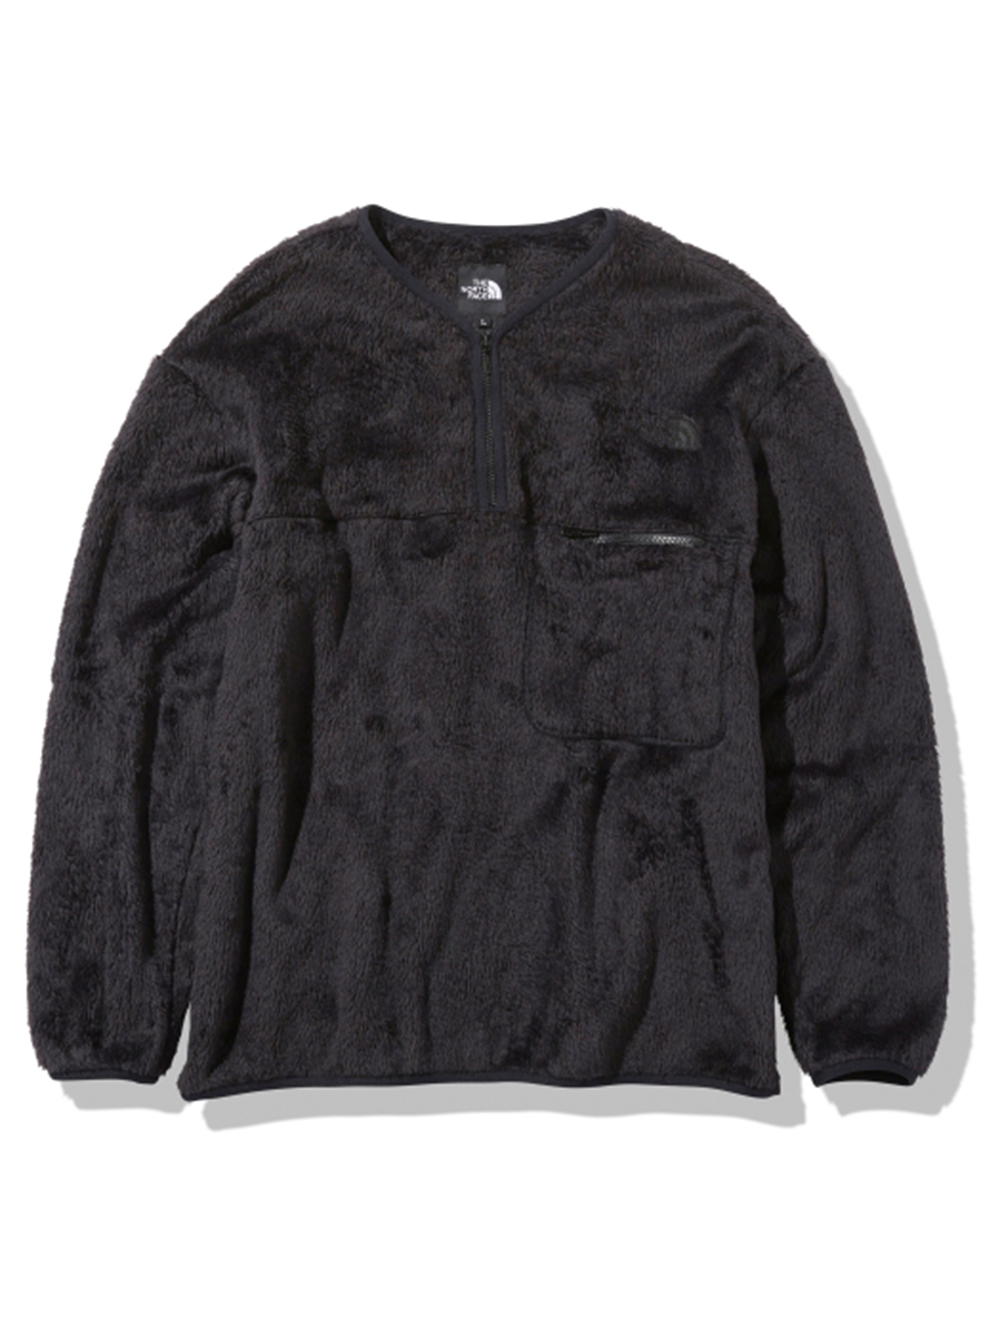 【THE NORTH FACE】Versa Loft Half Zip